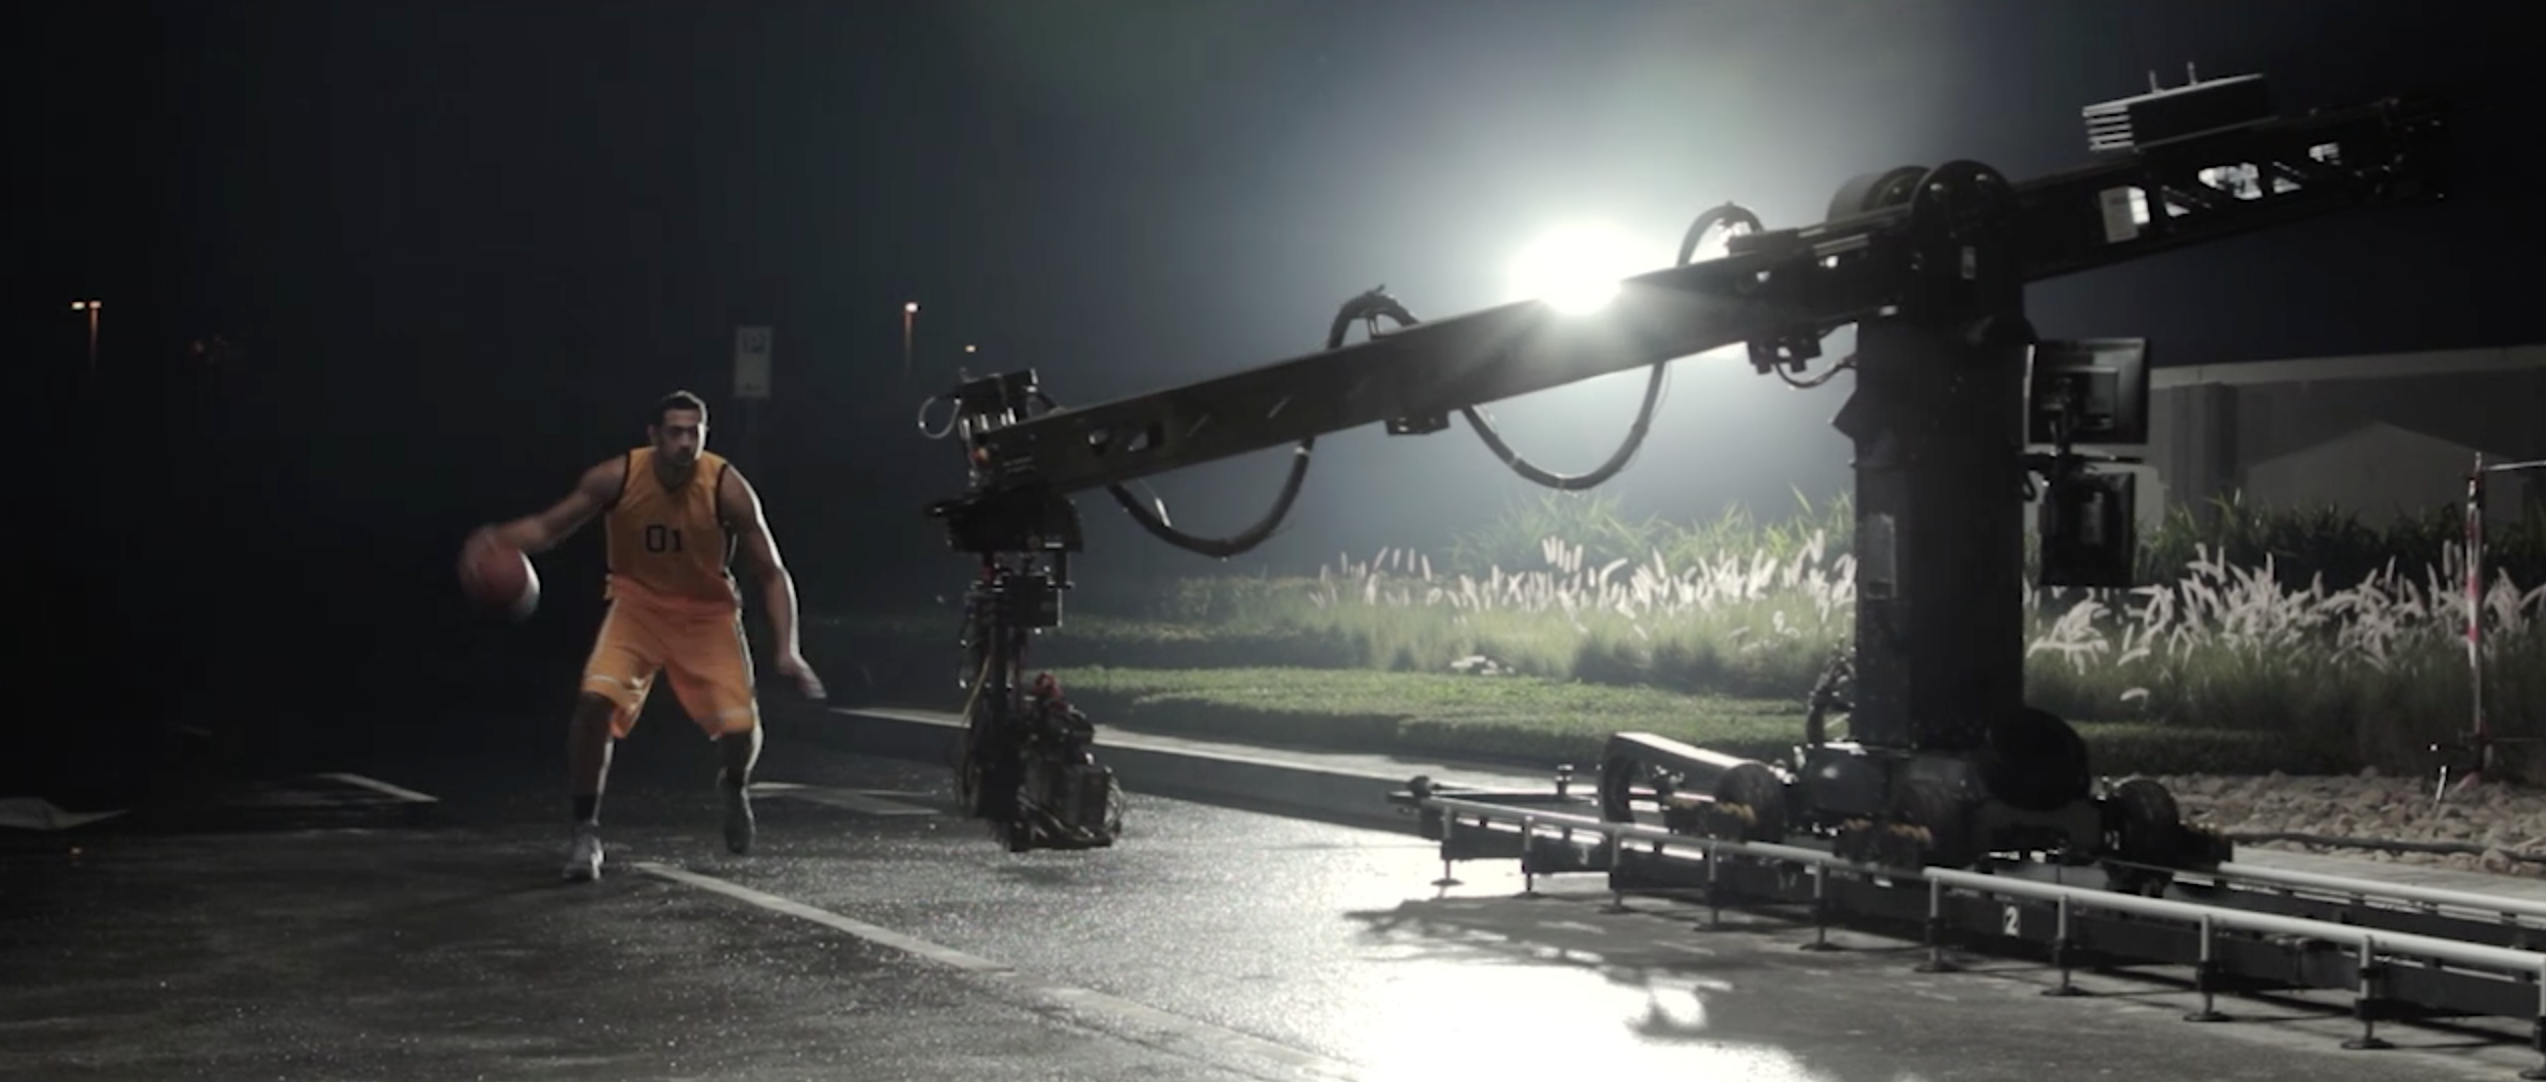 We produce and servicing commercials as well as TV idents, features, promos and documentaries for al...